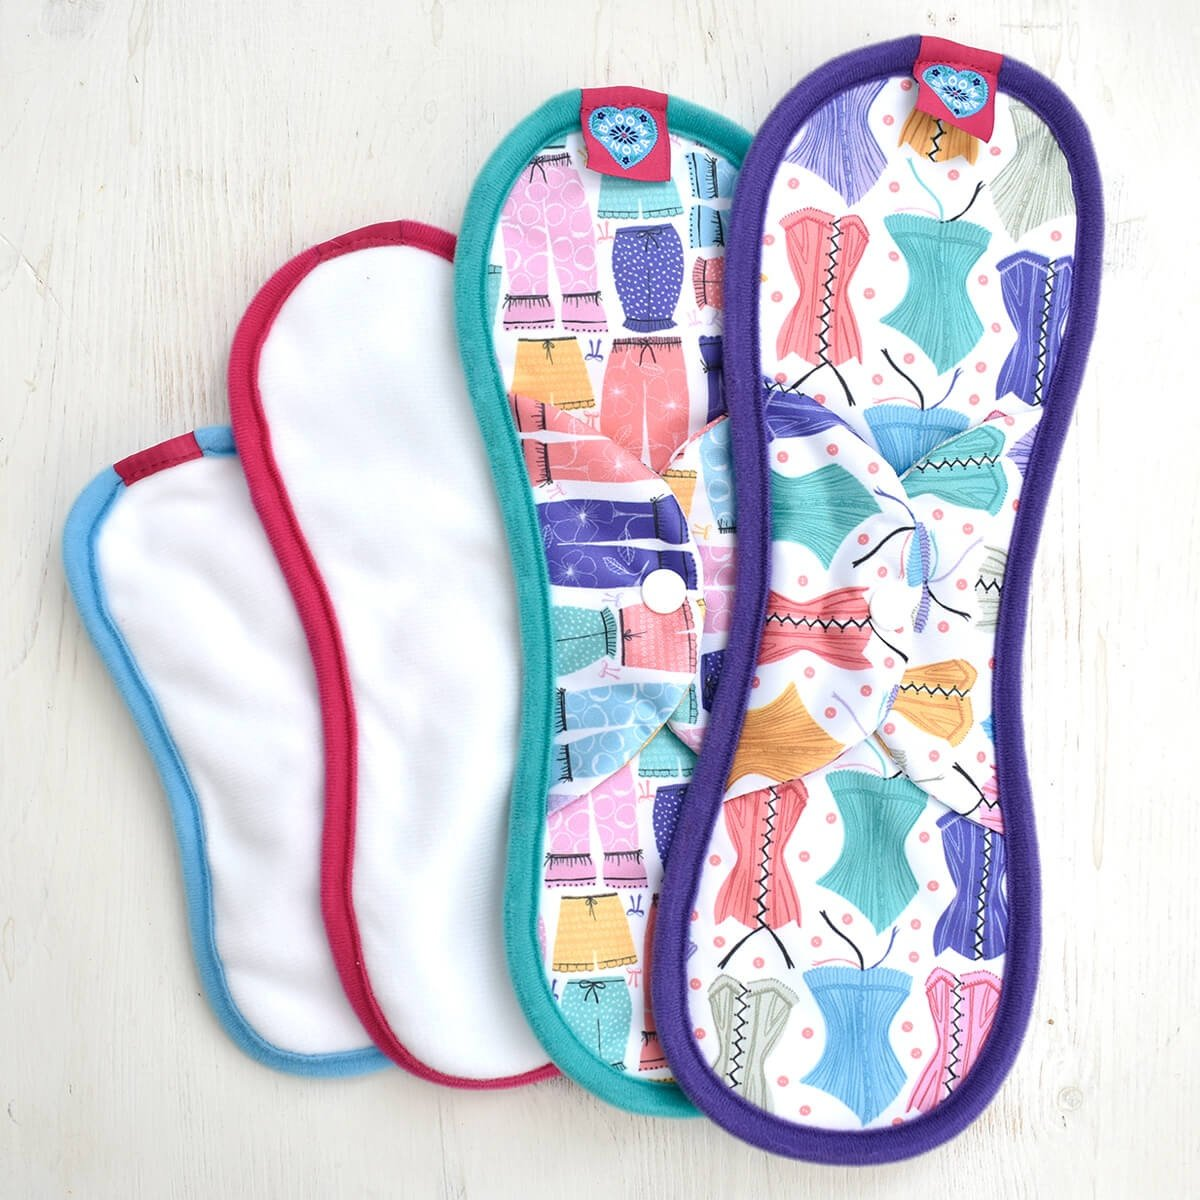 Reusable Period Options | cloth pads | Healthspectra